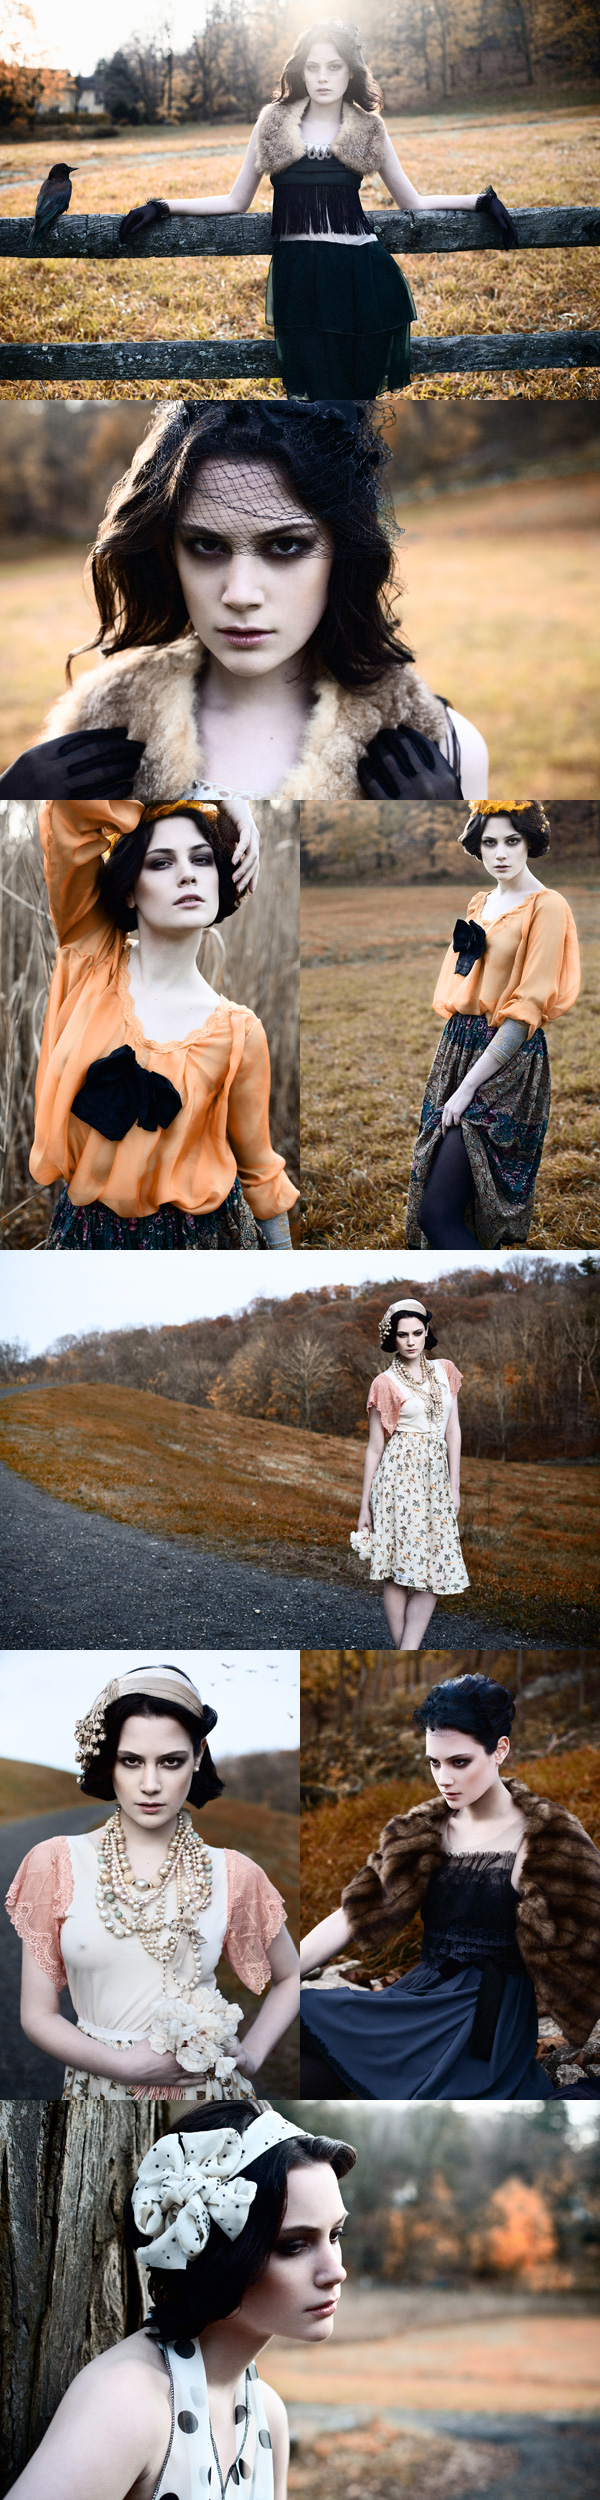 Jan 25, 2012 Clothing and styling by Anna Pitchouguina Hauntress